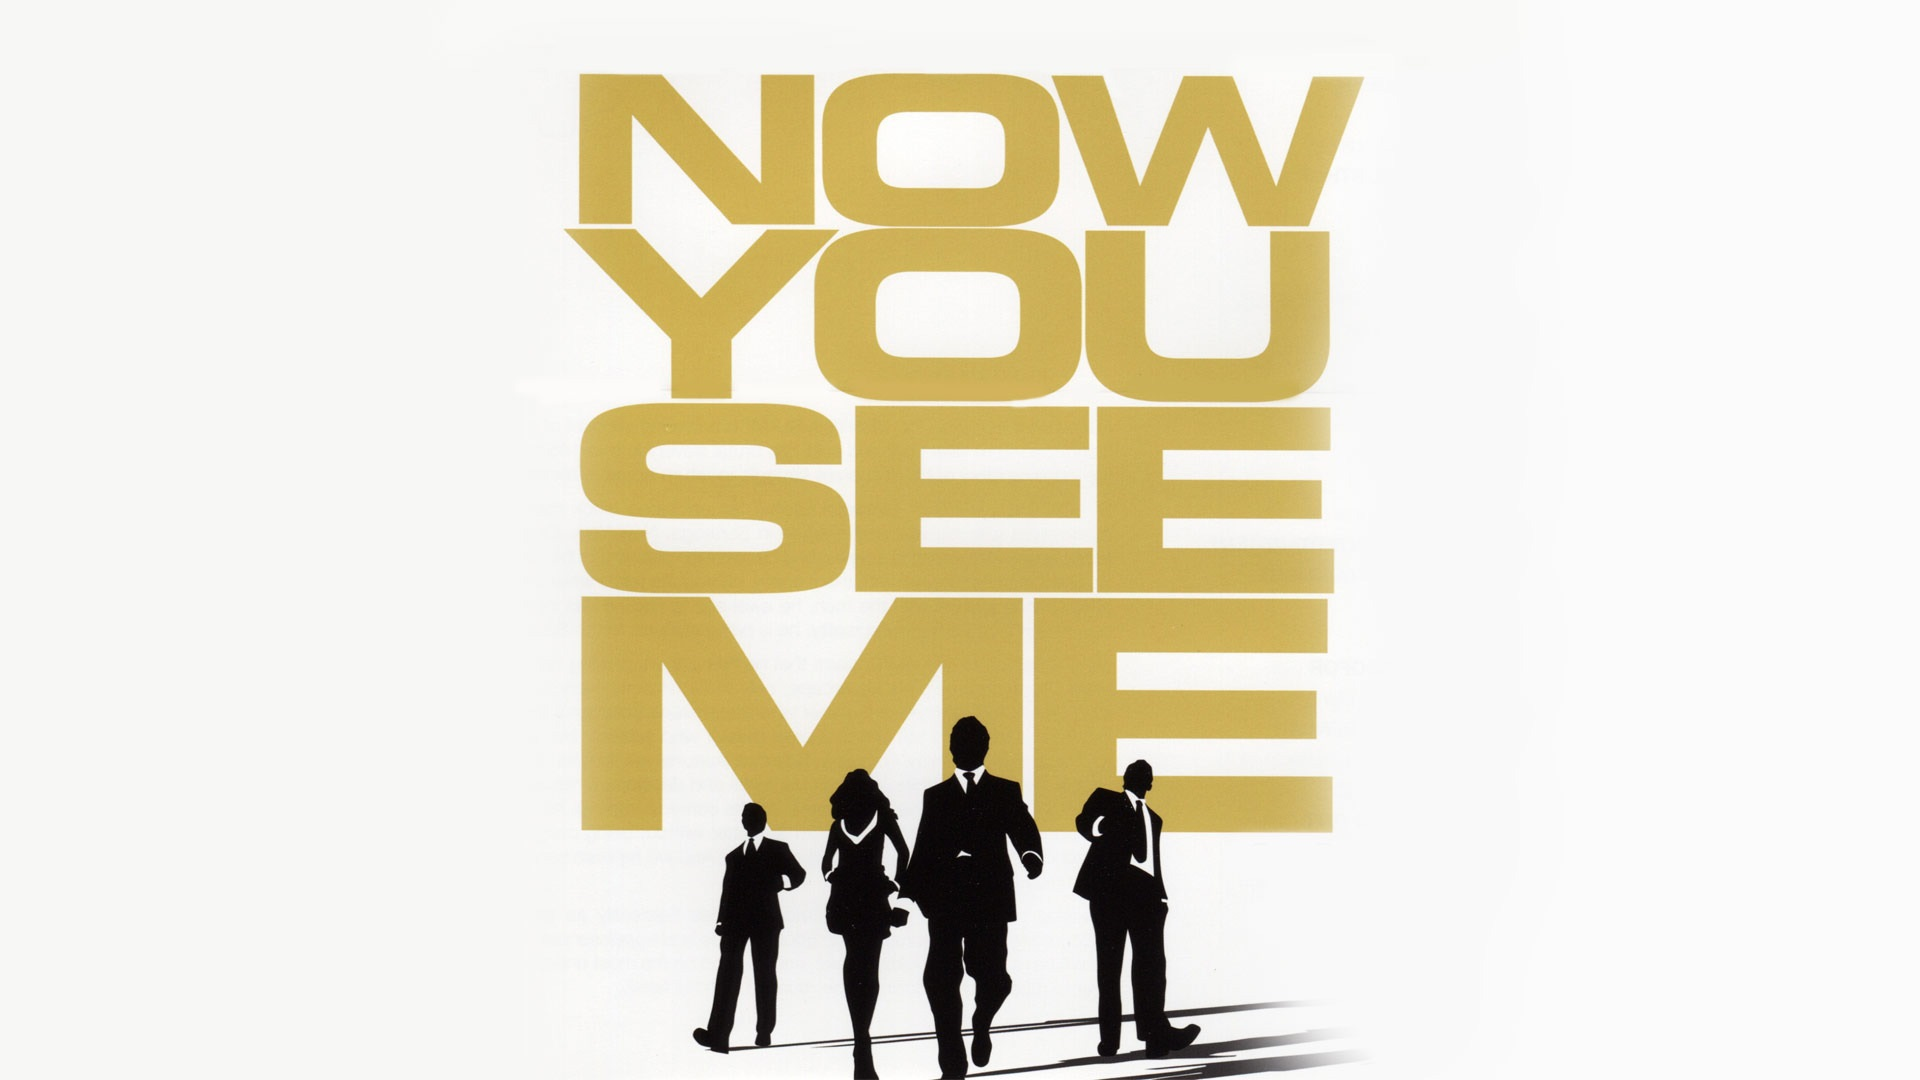 Now You See Me wallpaper 2